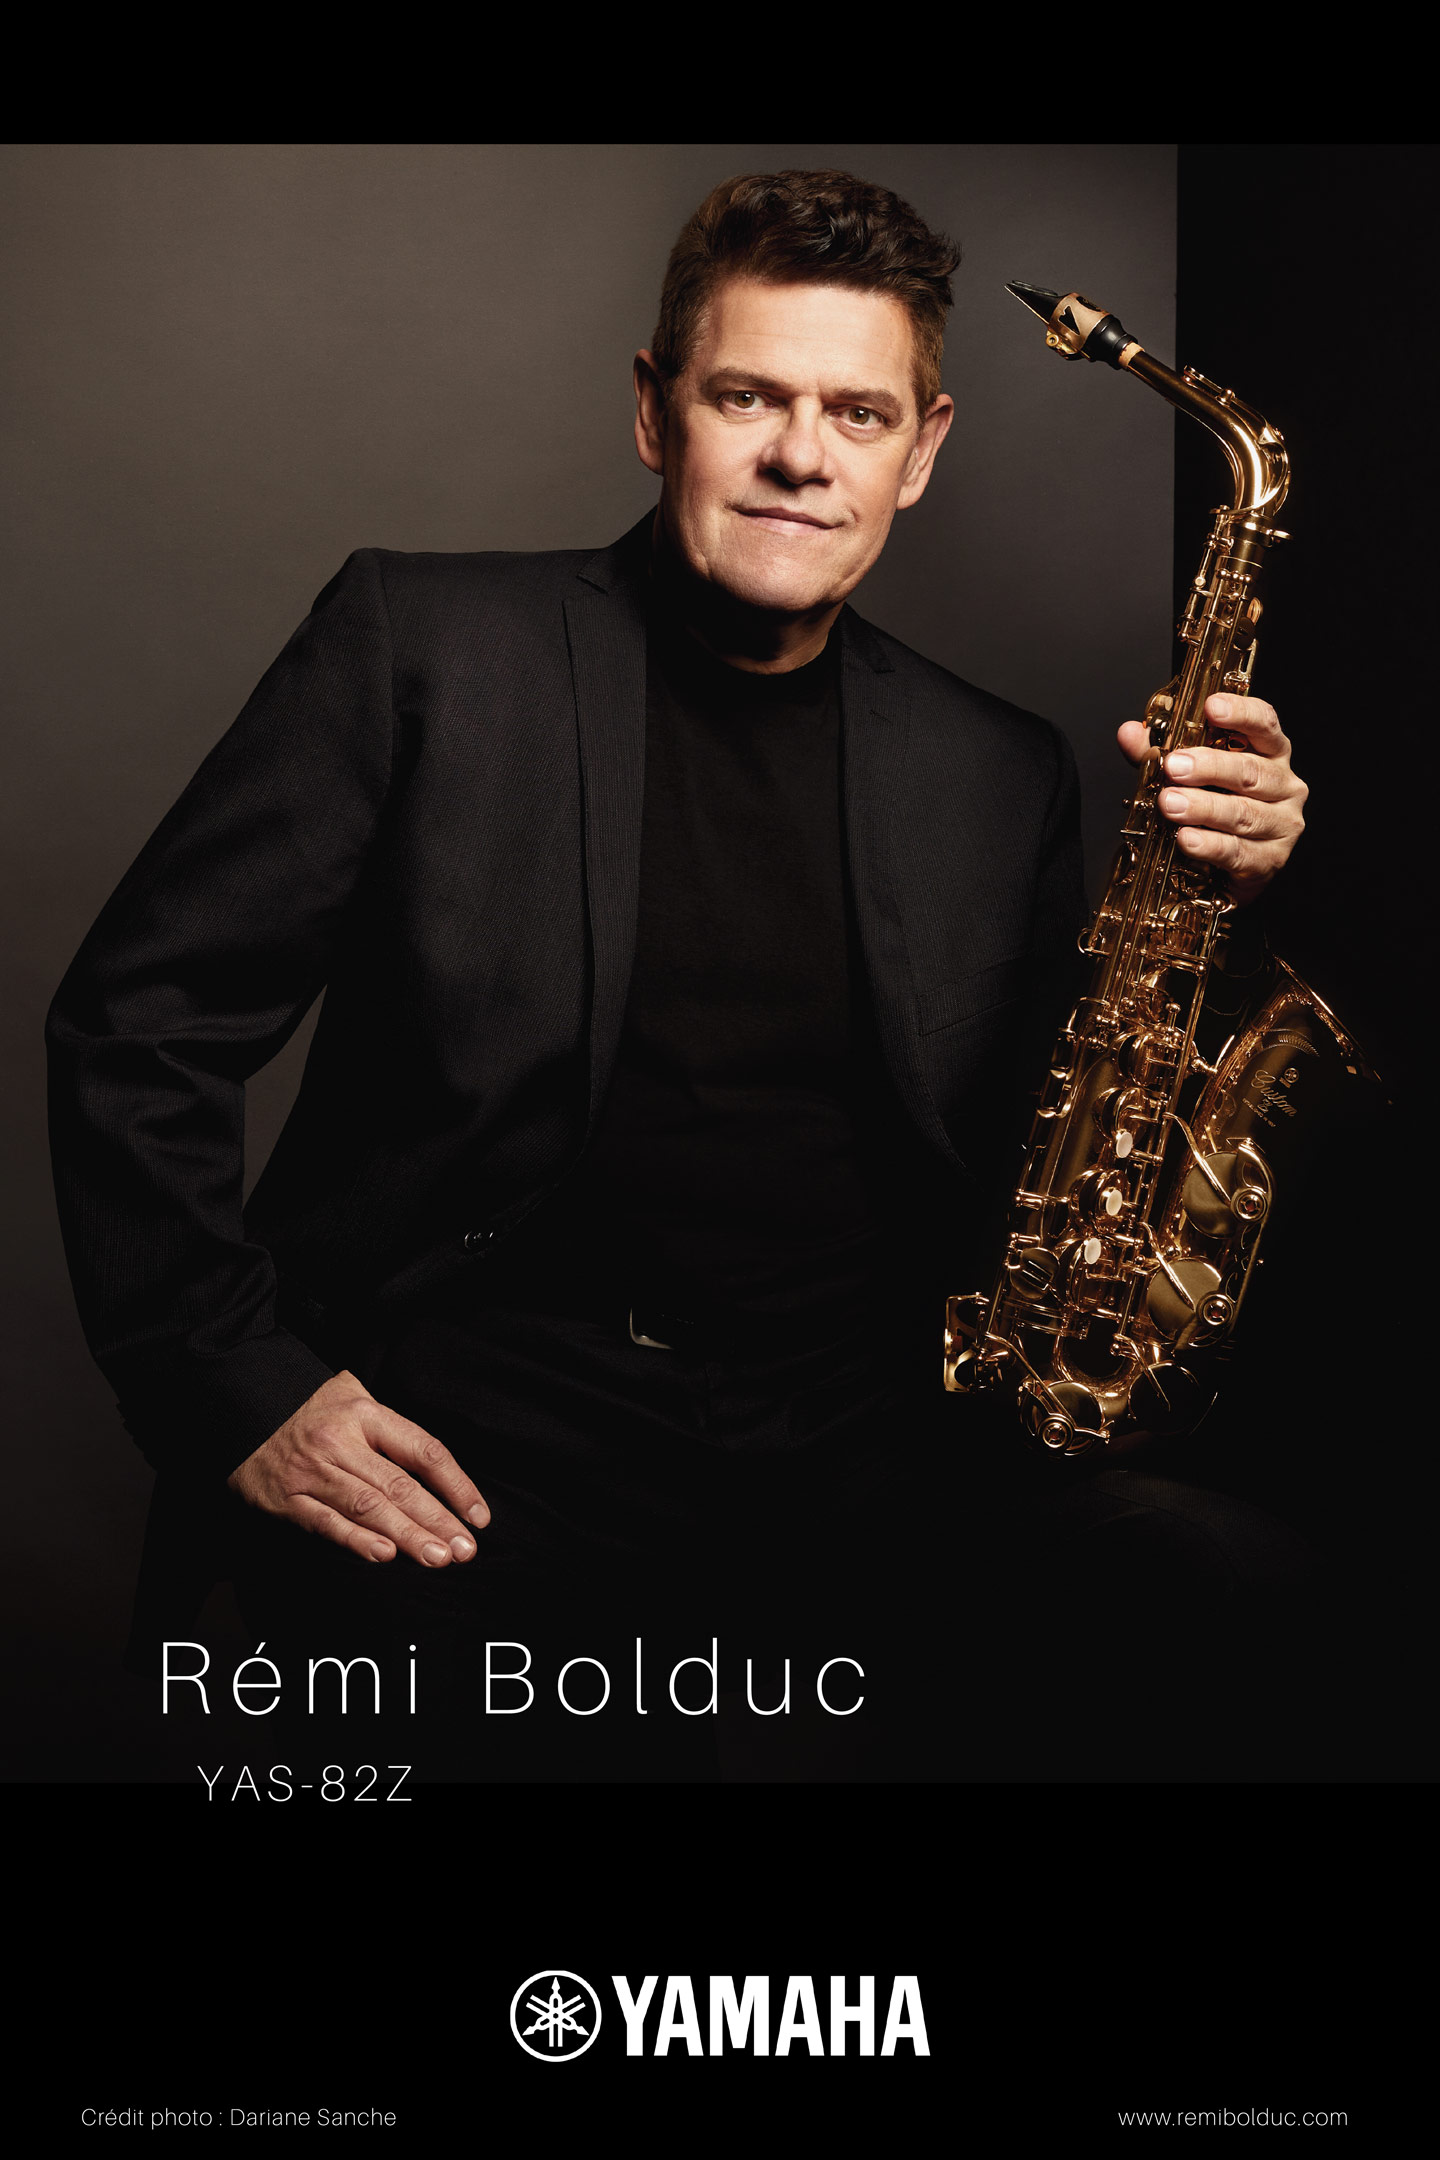 Commercial photographer portrait jazz saxophonist musician in Montreal Remi Bolduc